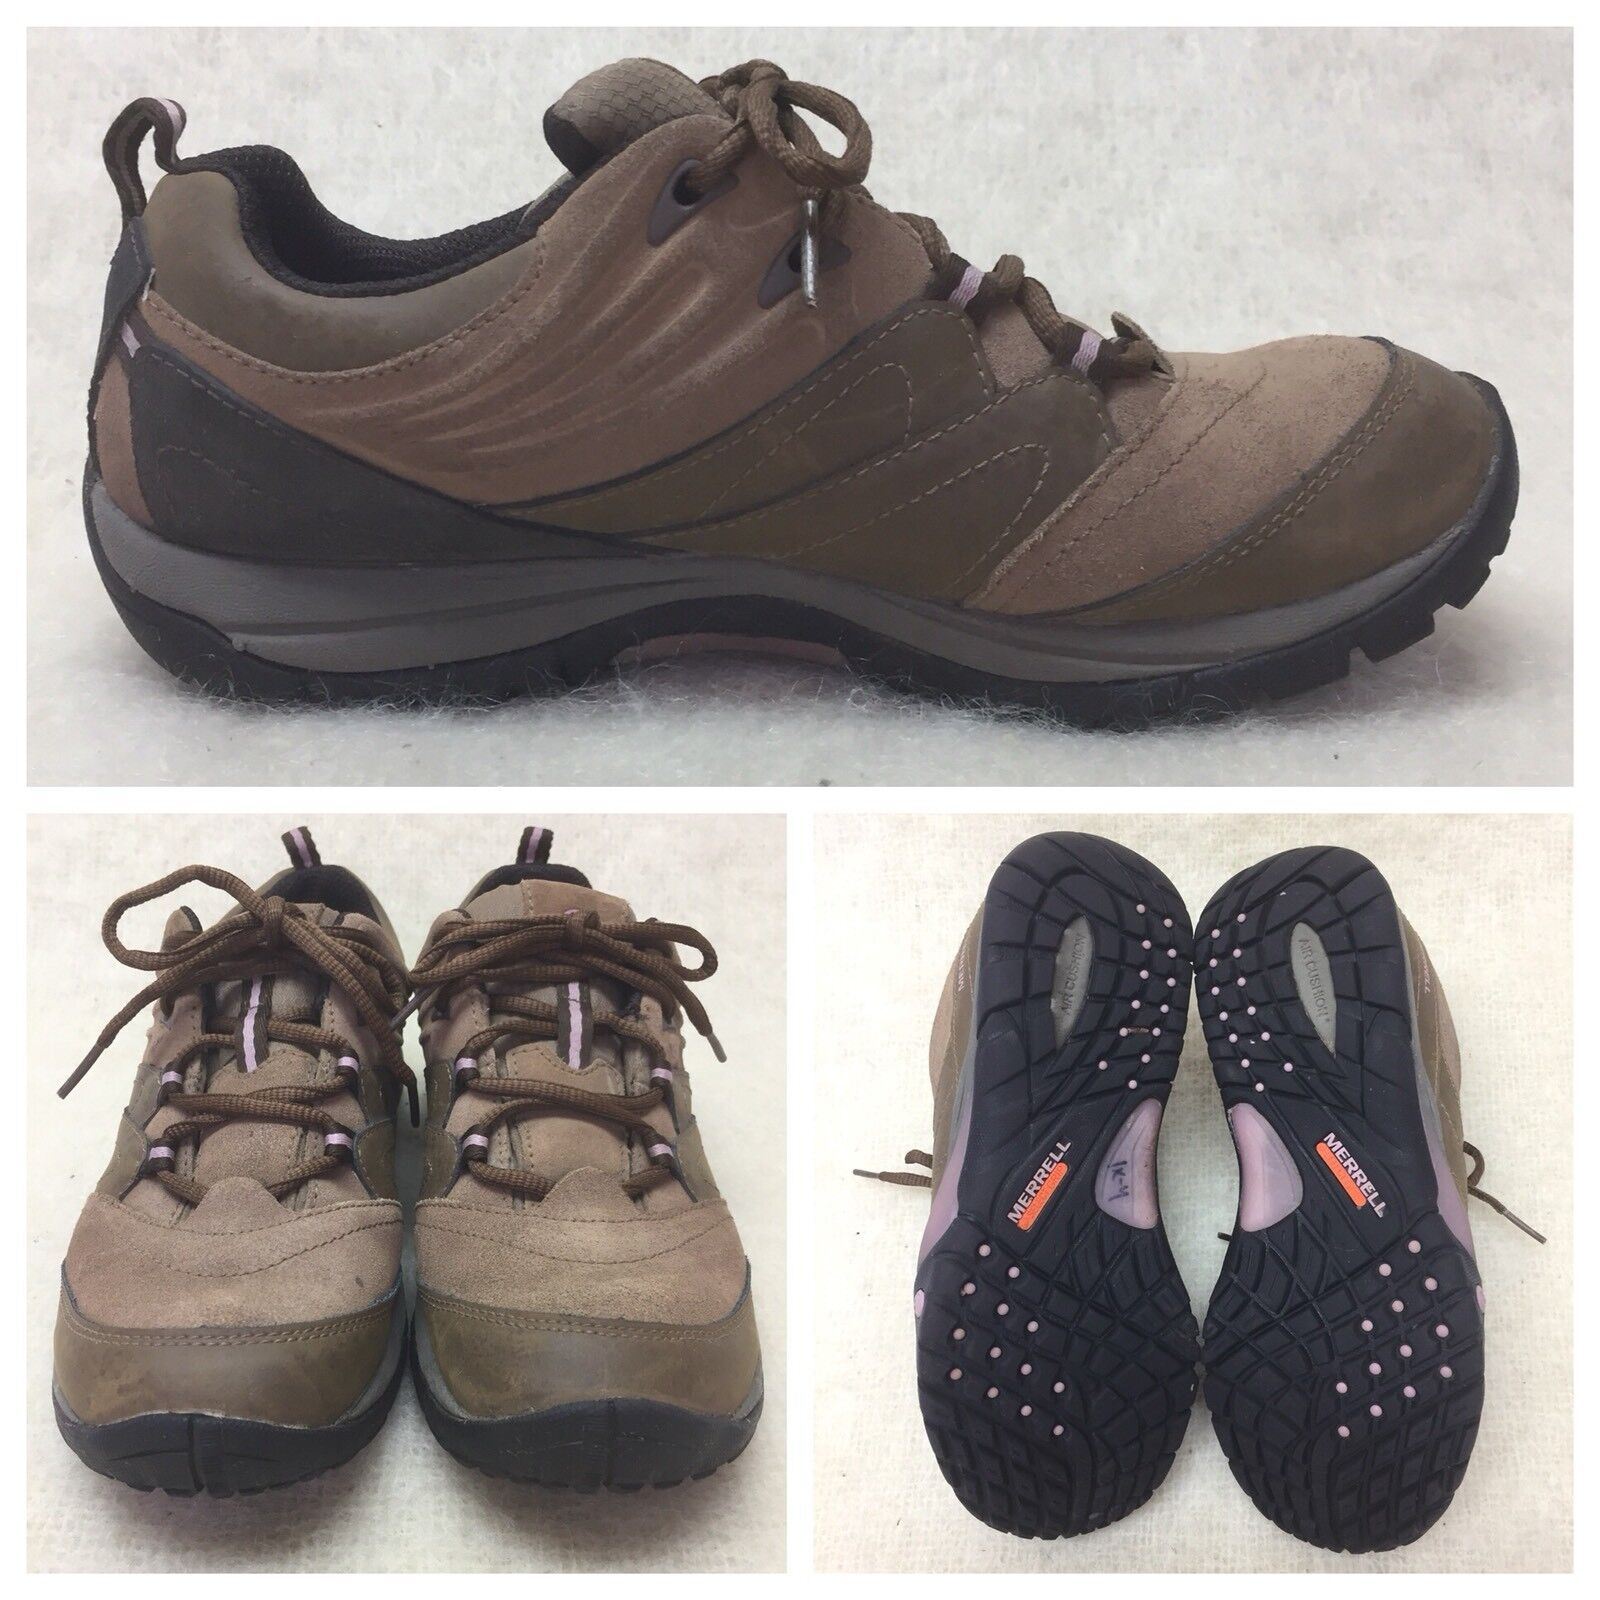 Merrell Select Grip  Hiking Lace Up Sneaker Otter Marron Leather Femme